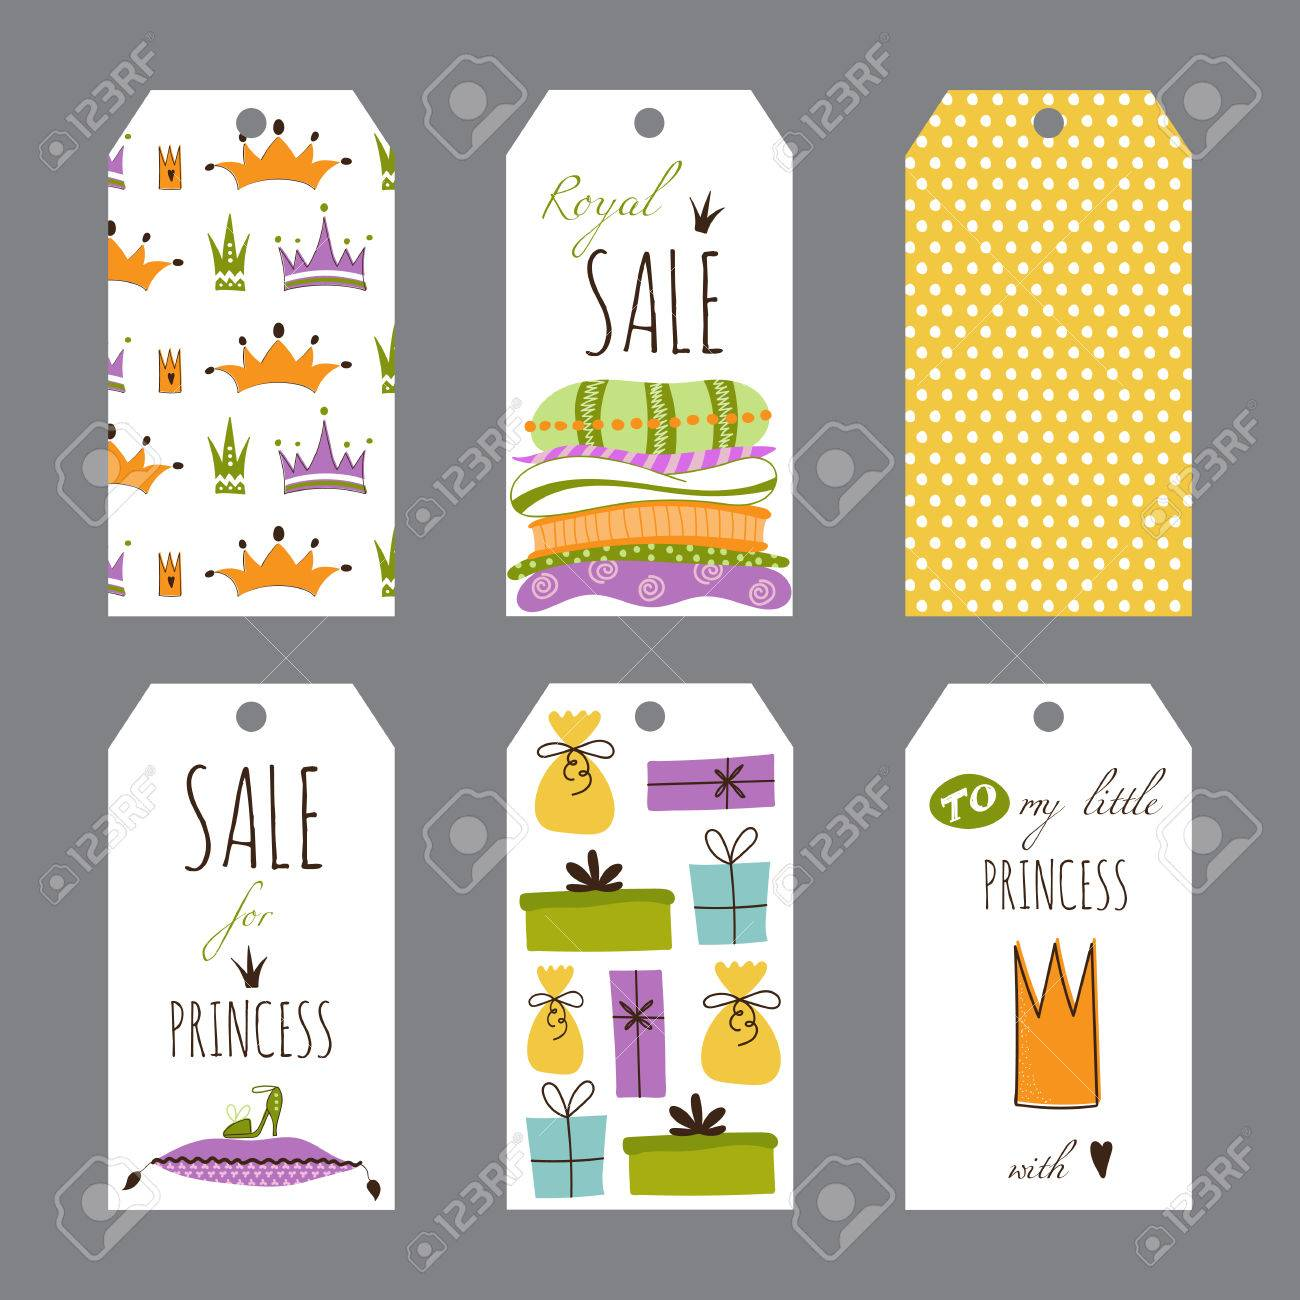 birthday souvenir tags template ; 56198431-vector-princess-party-set-of-tag-templates-cute-collection-for-birthday-greeting-cards-brochures-tag